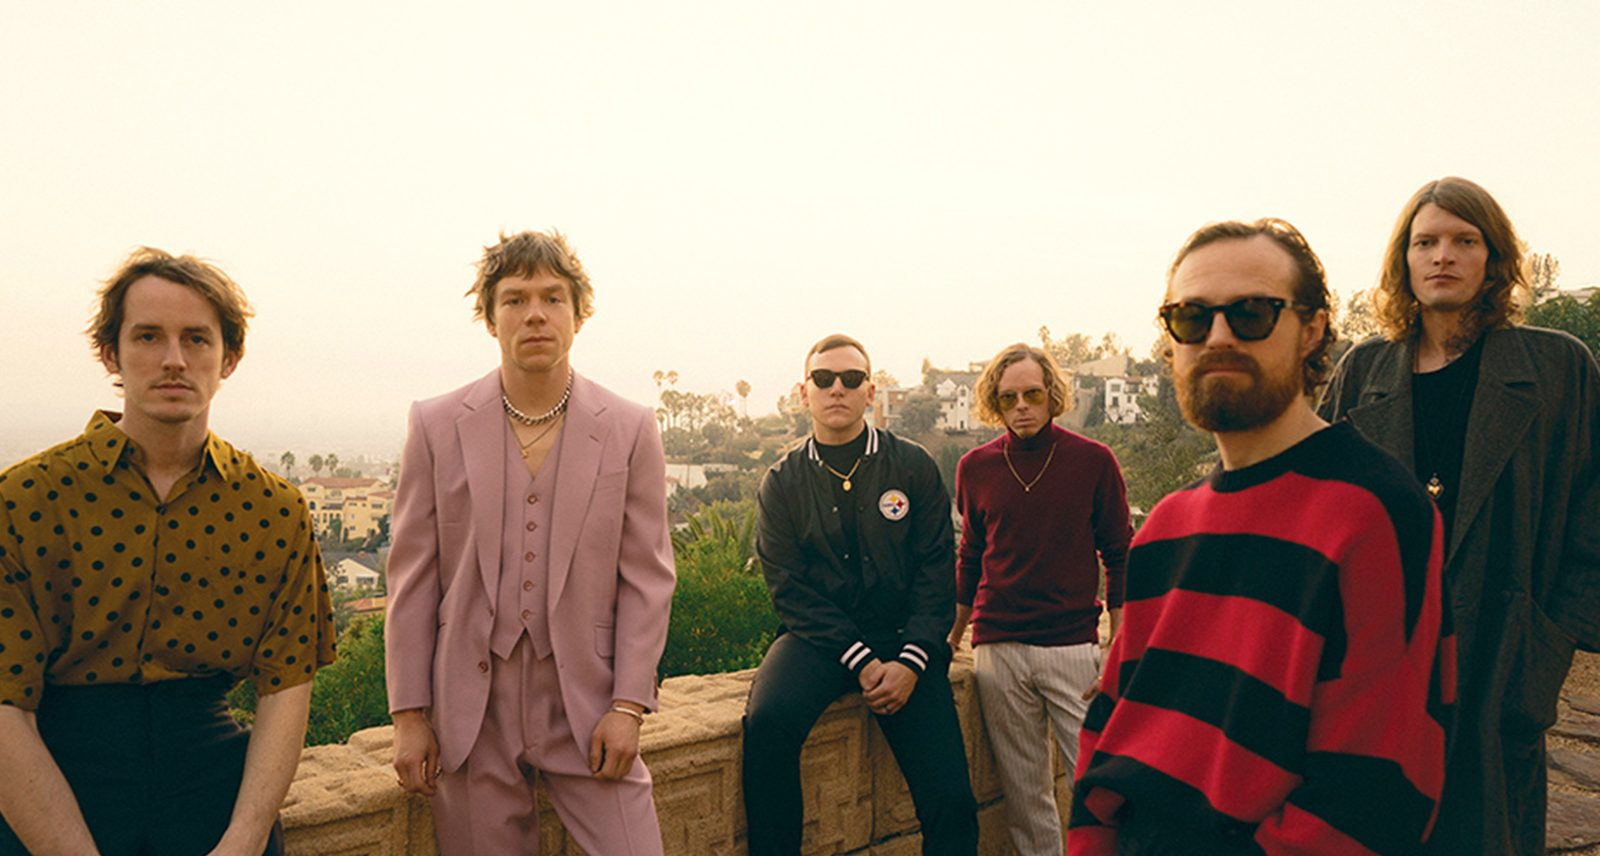 Cage the Elephant Aren't the Dysfunctional Rock Band You Want Them to Be